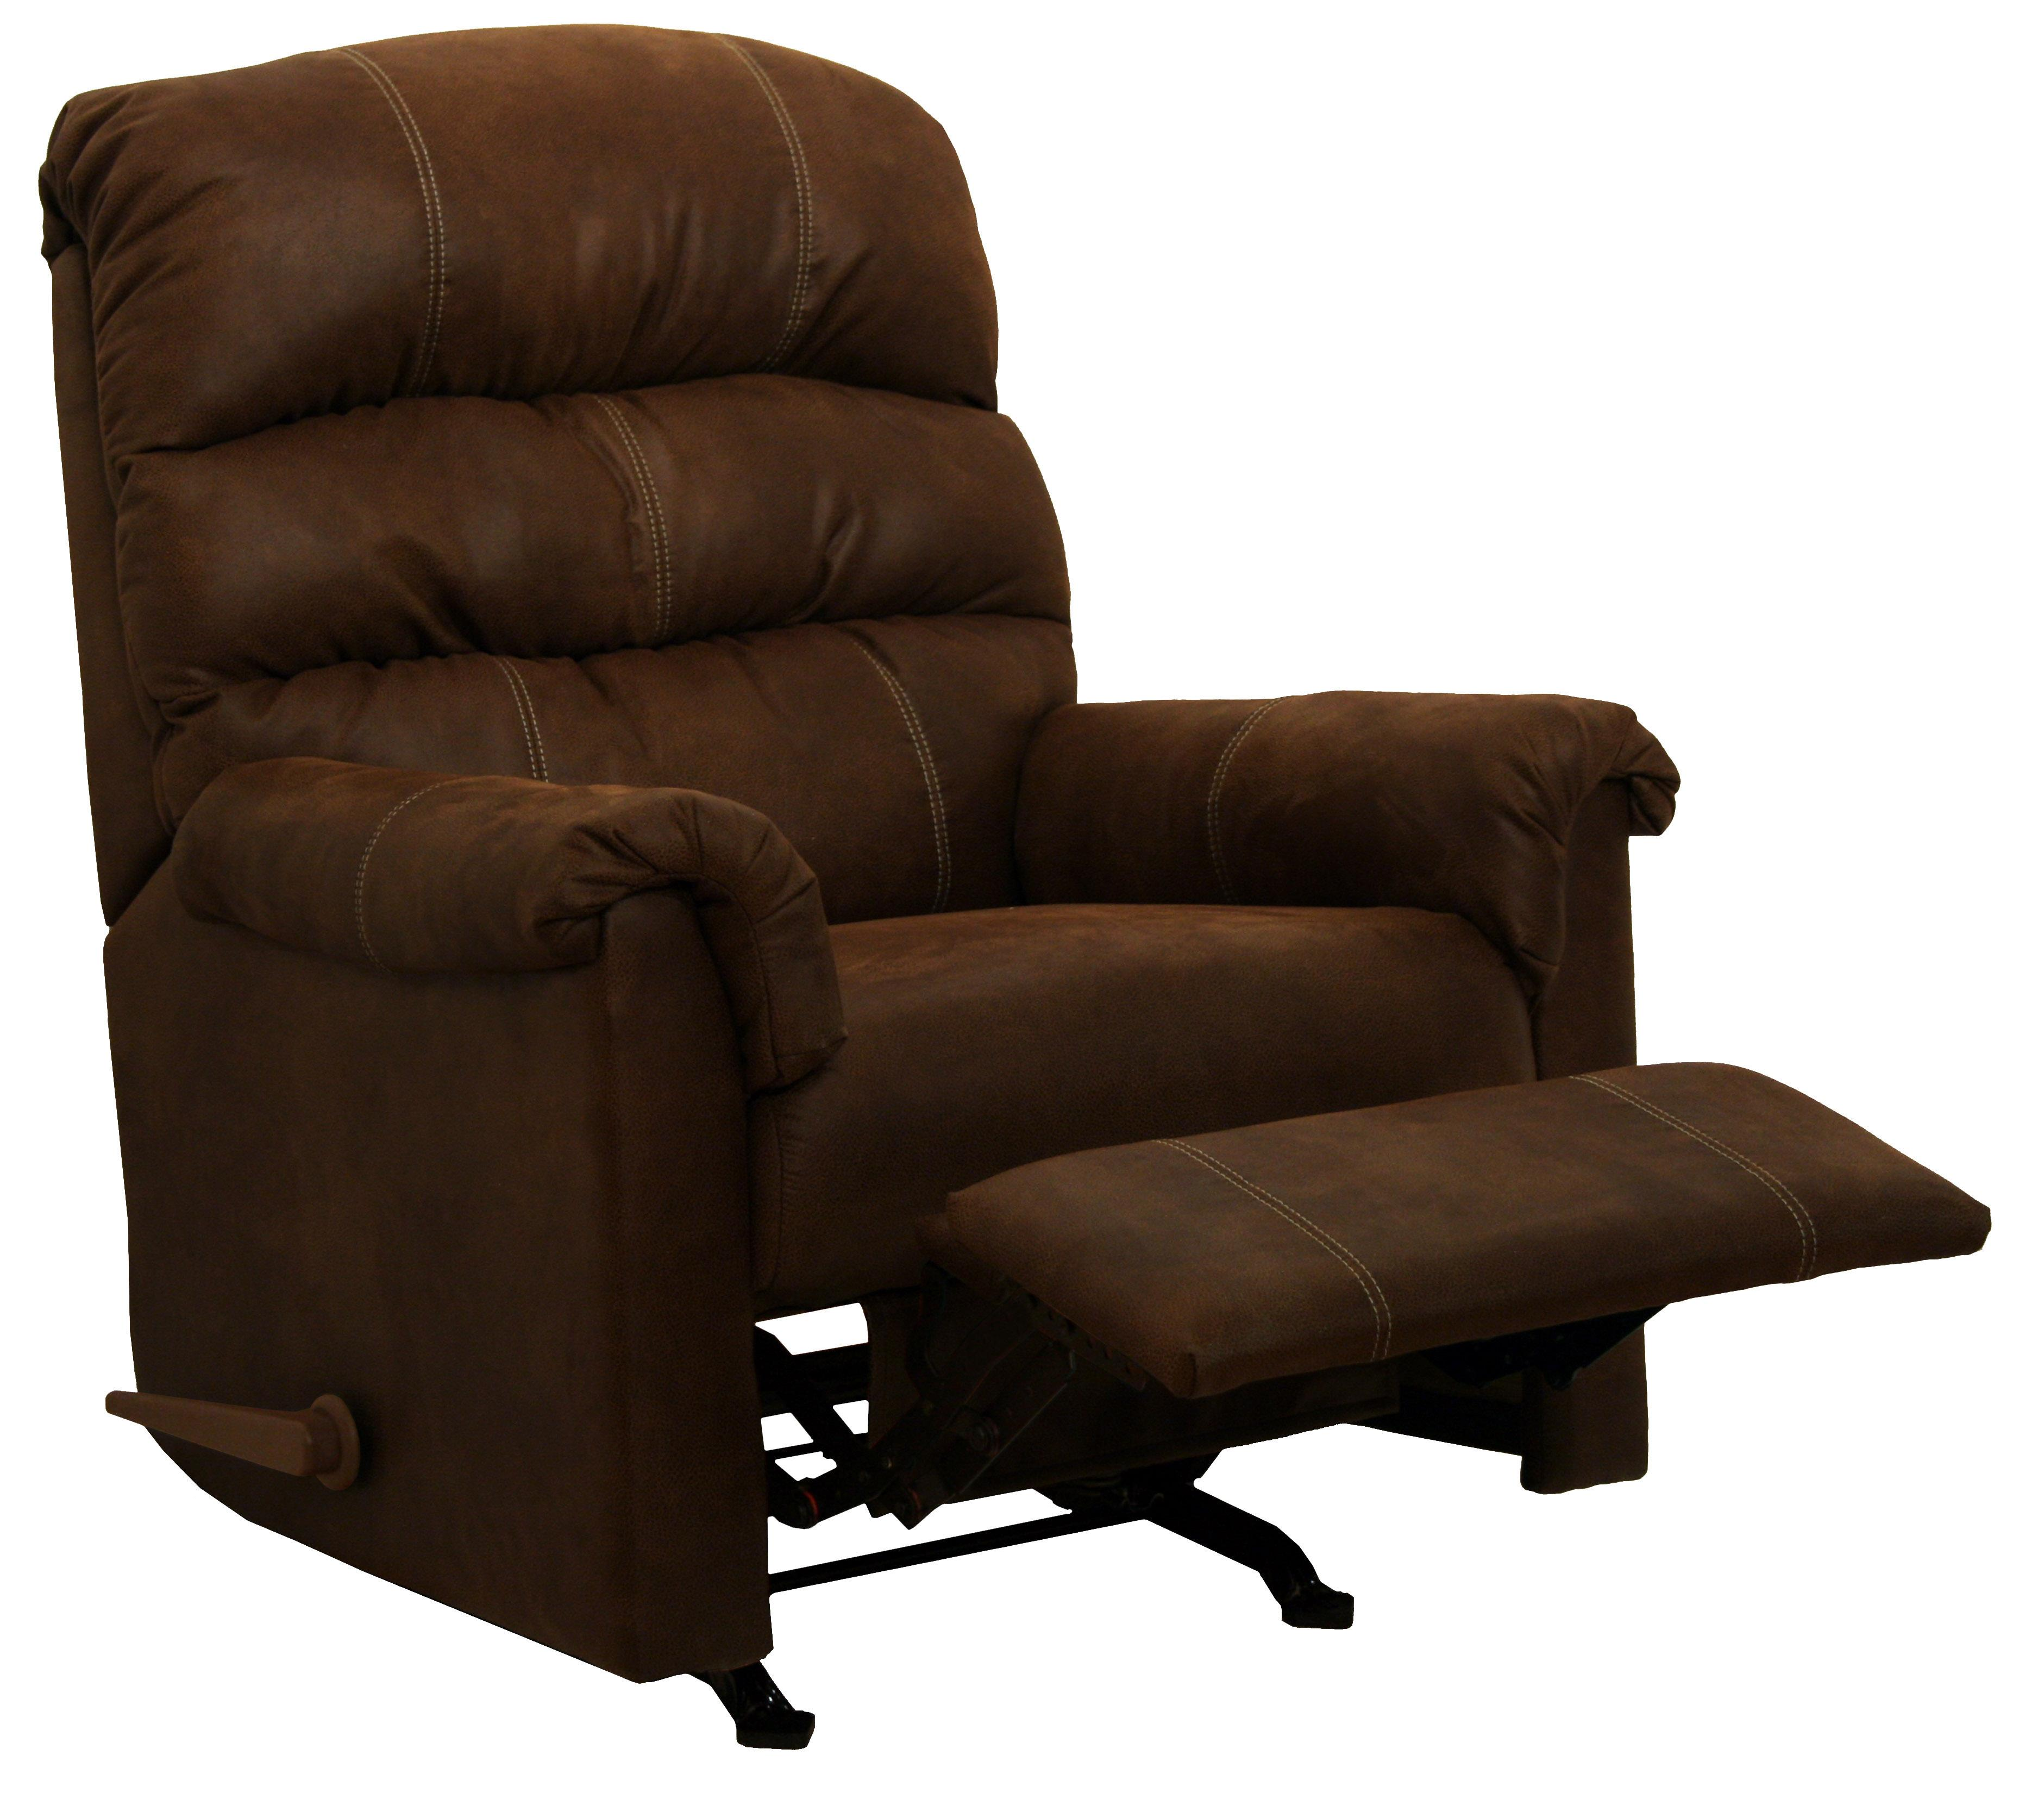 Capri Rocker Recliner by Catnapper at Bullard Furniture